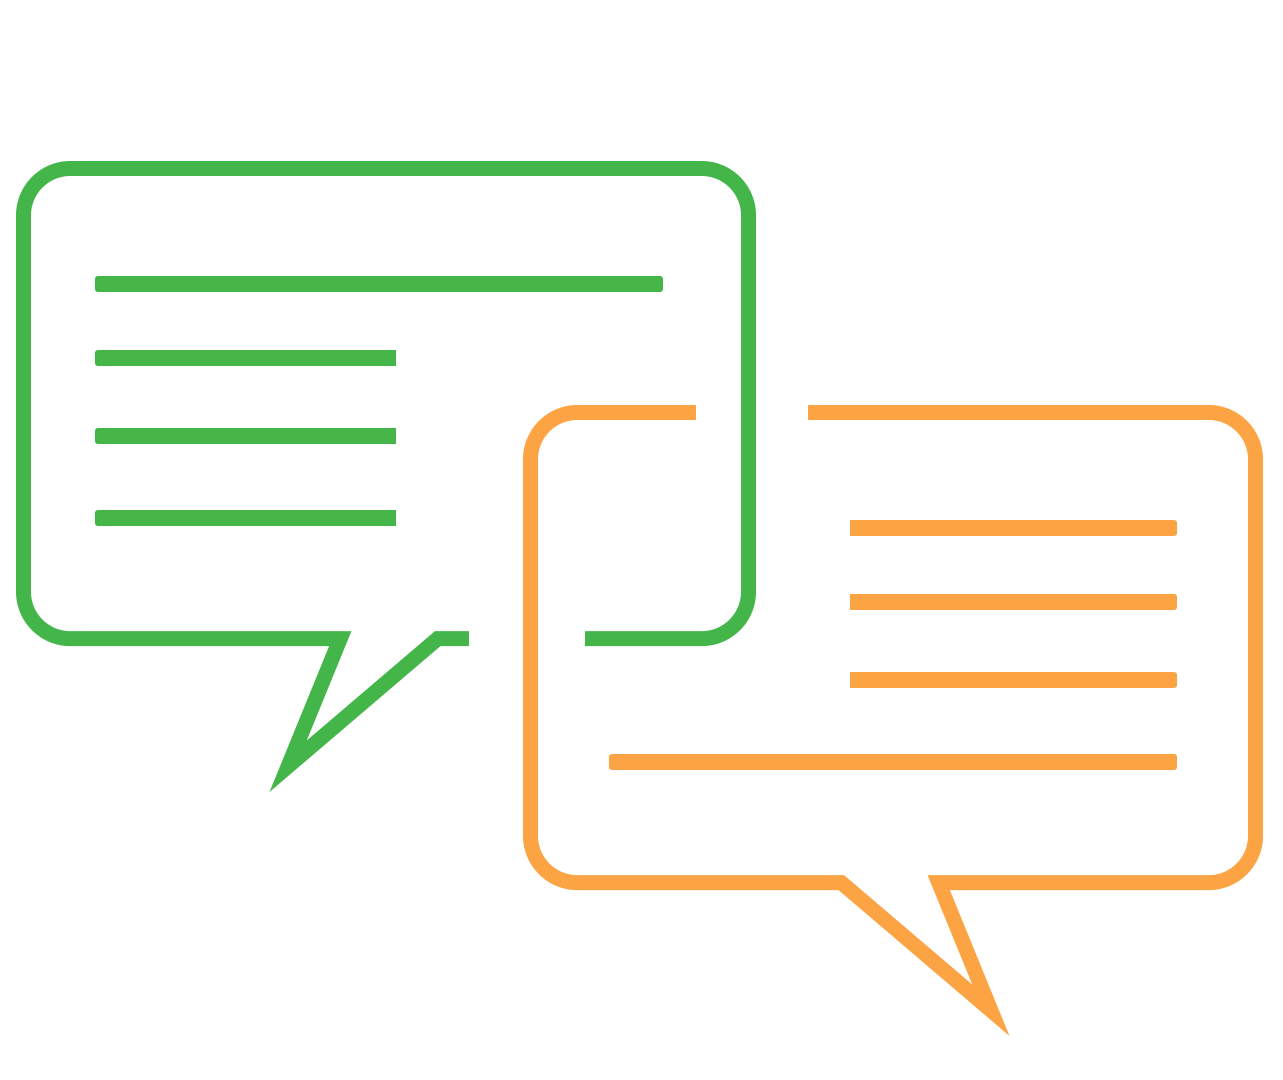 illustration of two speech bubbles representing communication